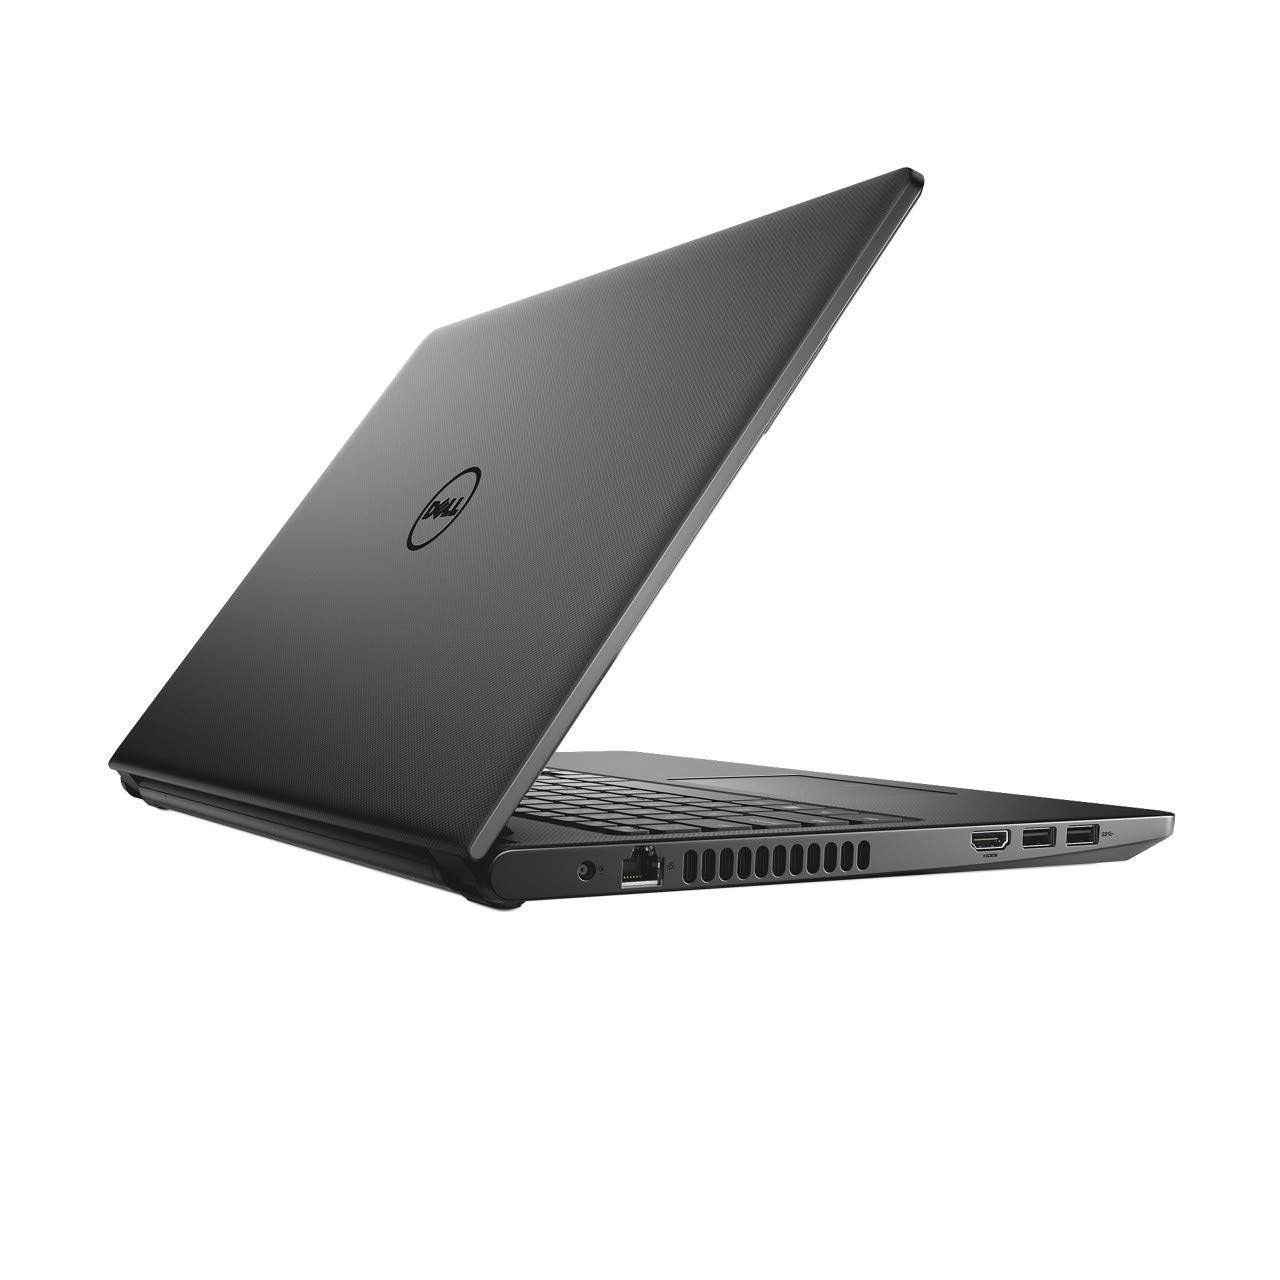 Dell Inspiron 15 3576 (core I5-8250U (8th Gen)/8GB RAM/1T.B HDD/15.6 FHD/Windows 10 Home With Office Home And Student 2016) (Black)